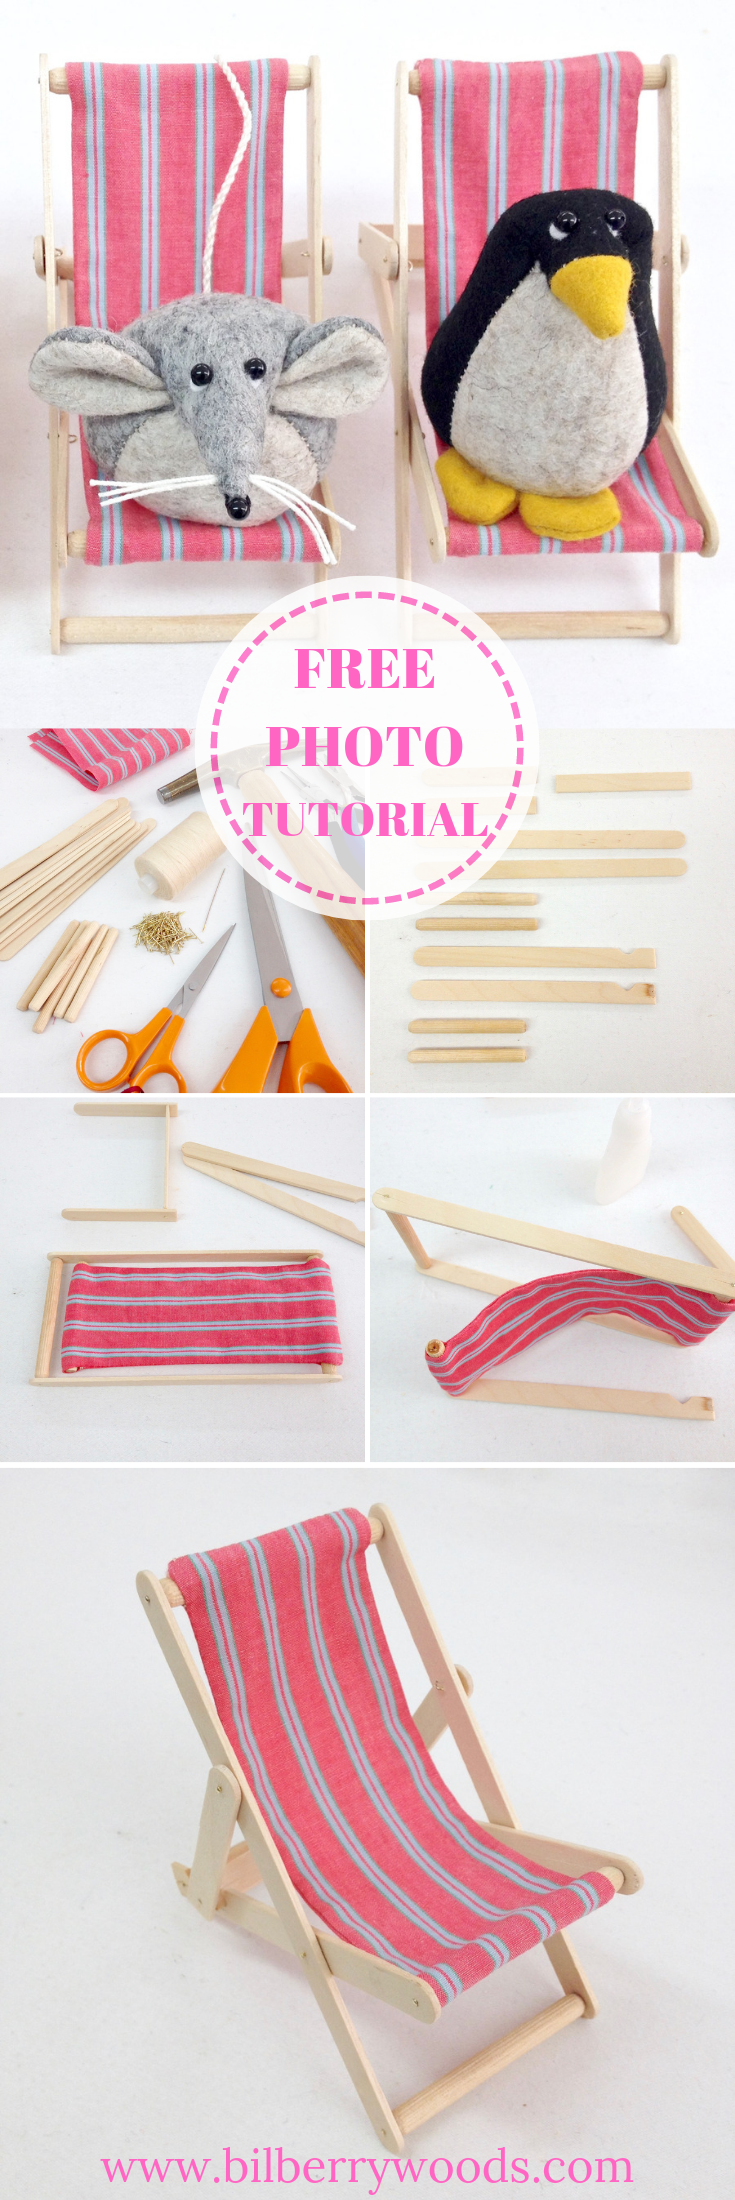 DIY Miniature Deck Chair Photo Tutorial   Doll's House furniture by Bilberry Woods